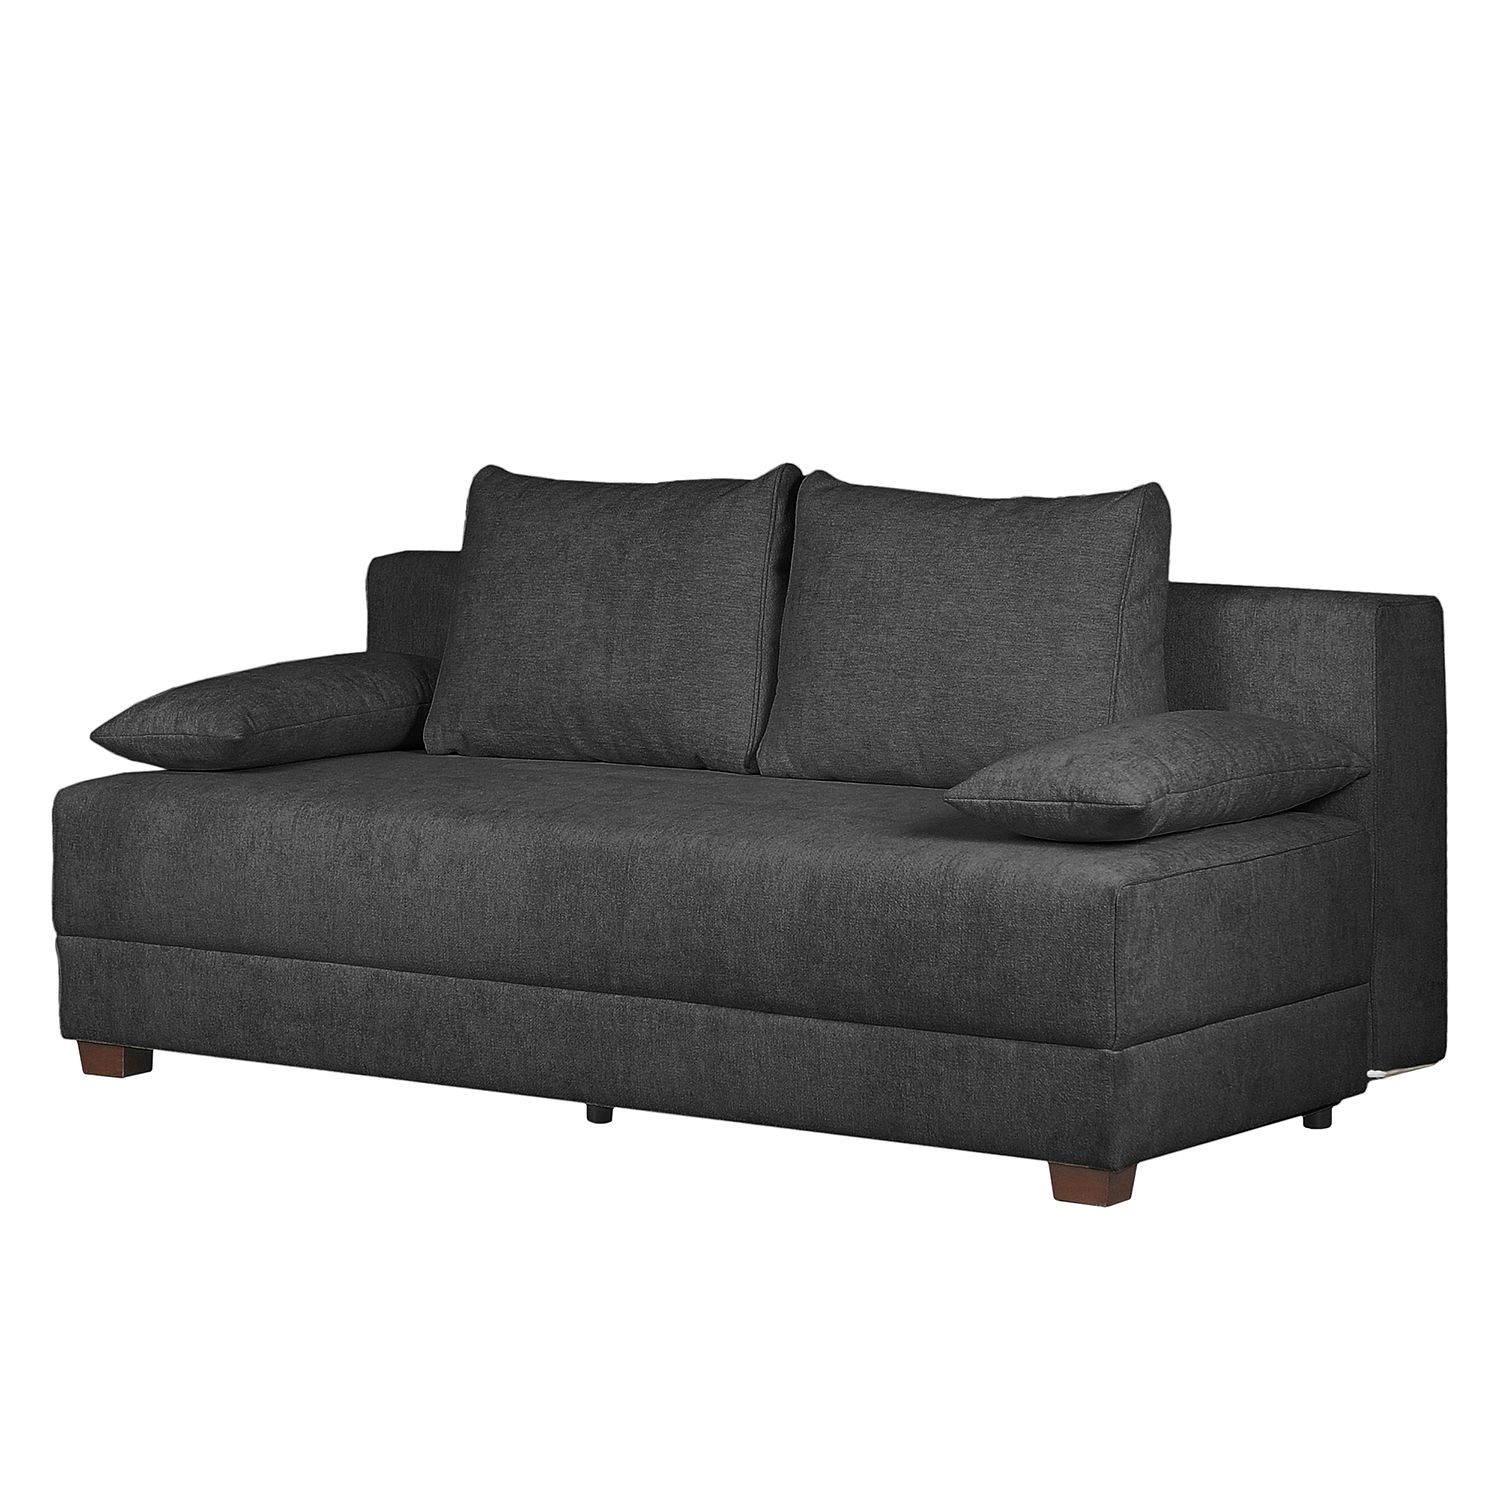 Boxspring-Schlafsofa Dingo I Webstoff - Anthrazit, mooved bei Home24 - Möbel